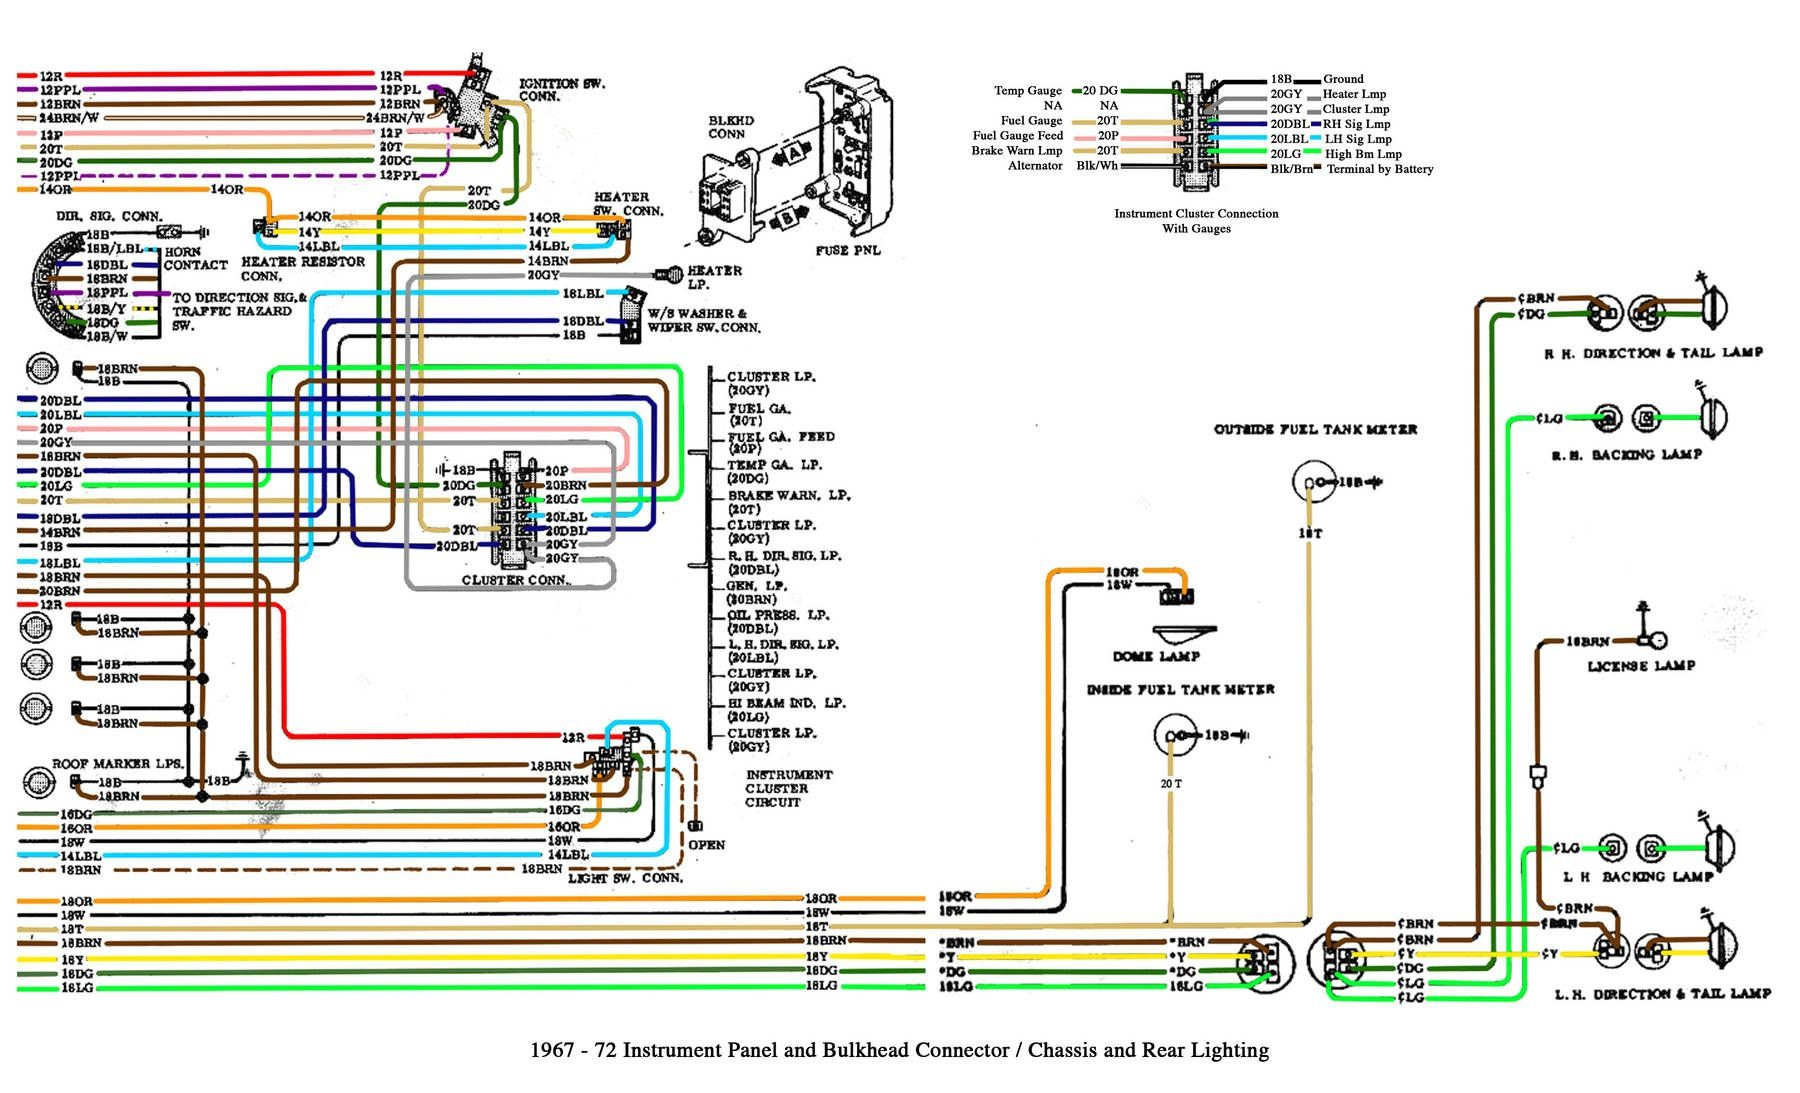 Truck Wiring Diagram Download Sample Old Trailer Collection Semi Inspirational Bryan S